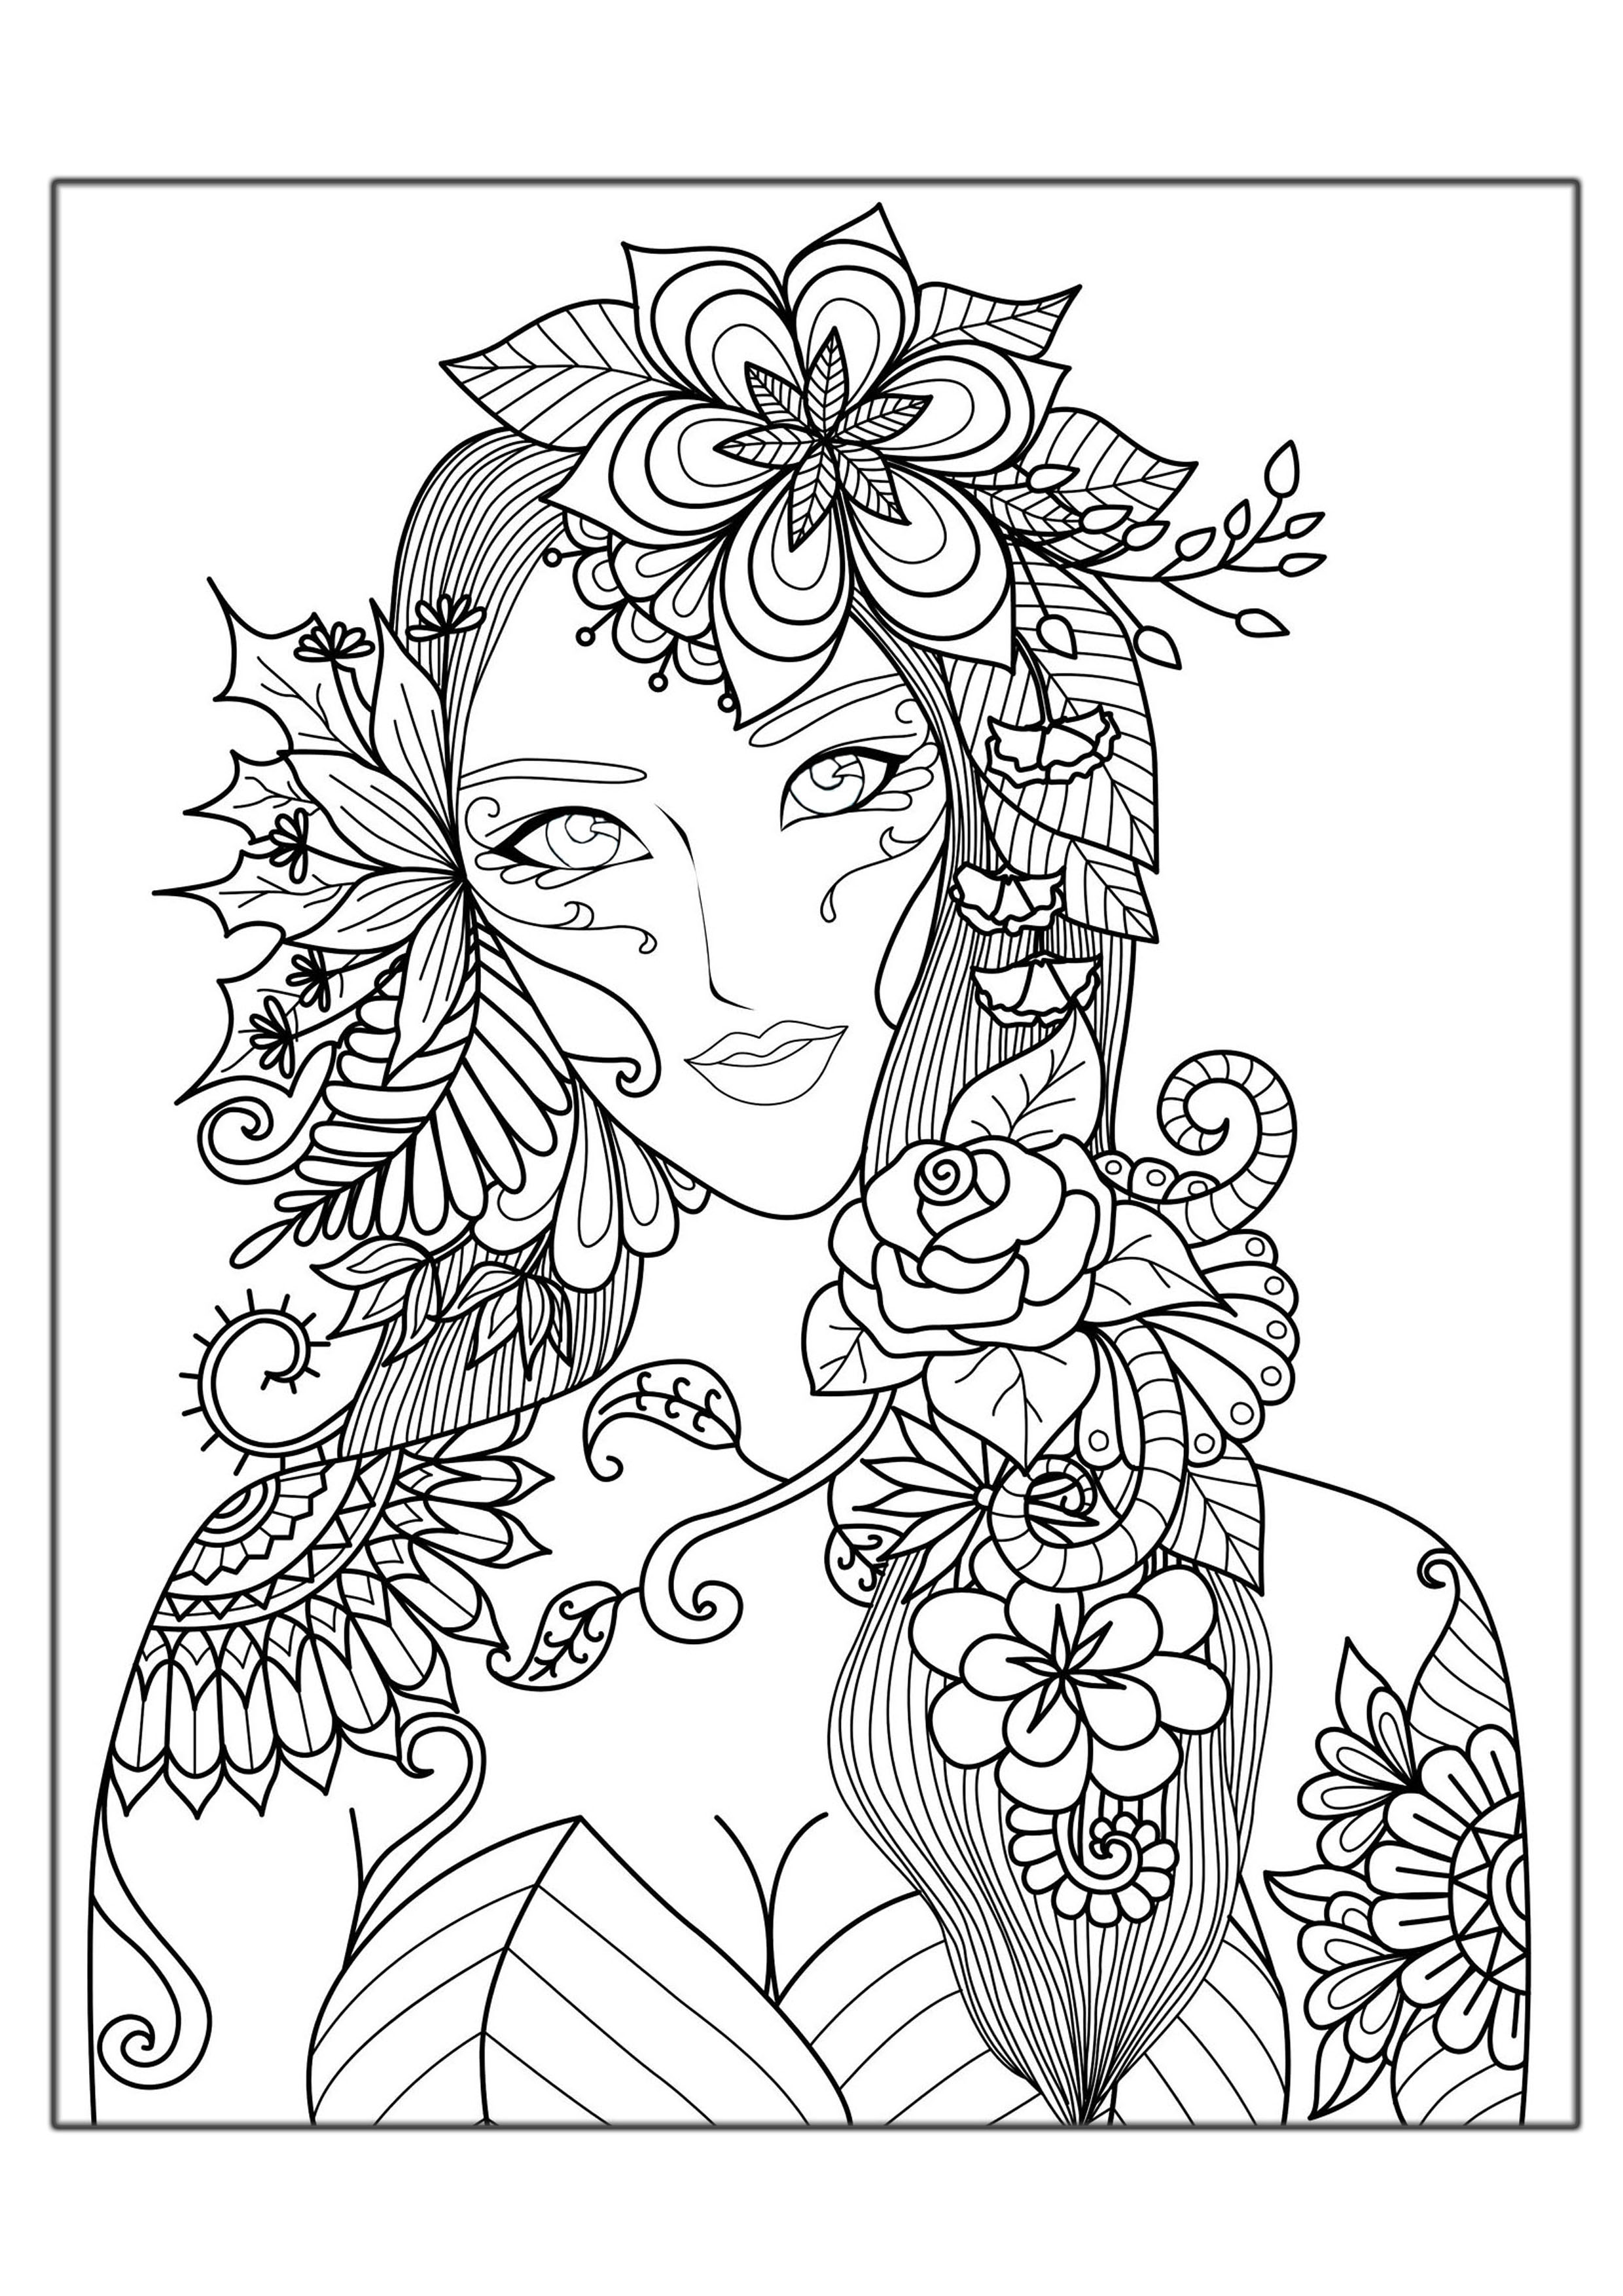 free coloring pages for adults printable printable coloring pages for adults 15 free designs printable coloring adults free pages for